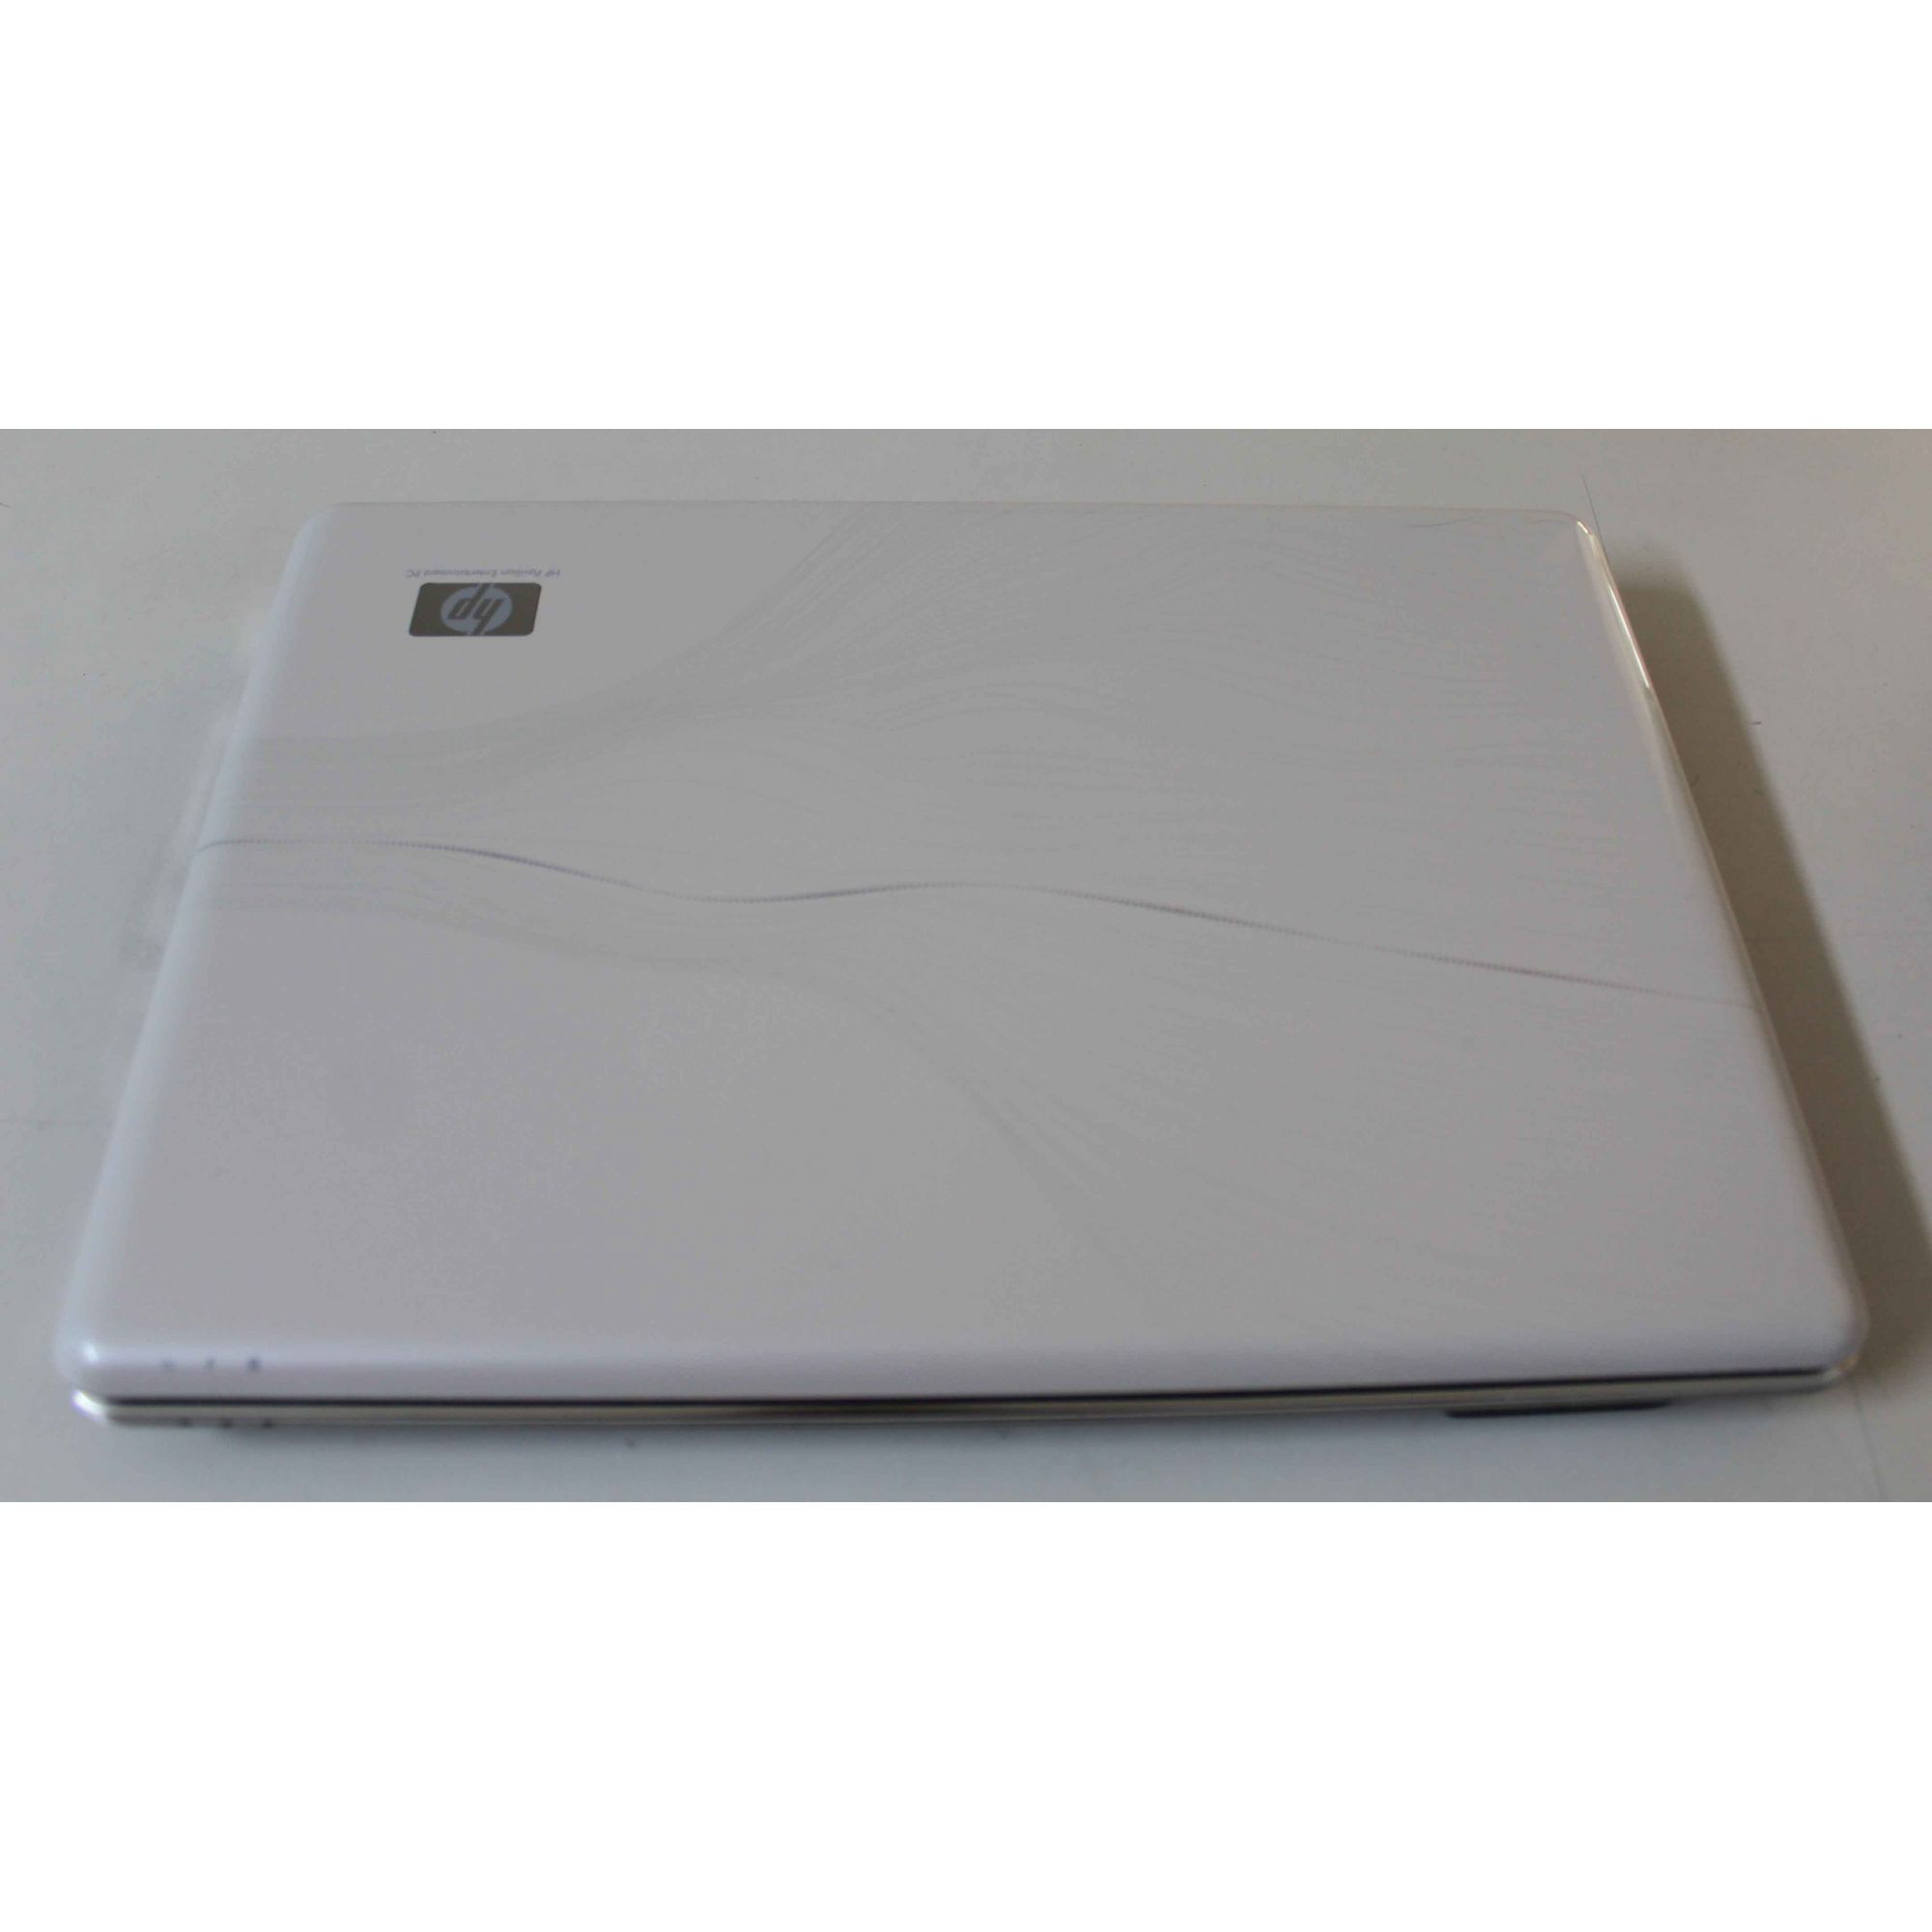 "Notebook HP Pavilion DV4 14"" Core 2 Duo 2.10GHz 4GB HD-160GB"